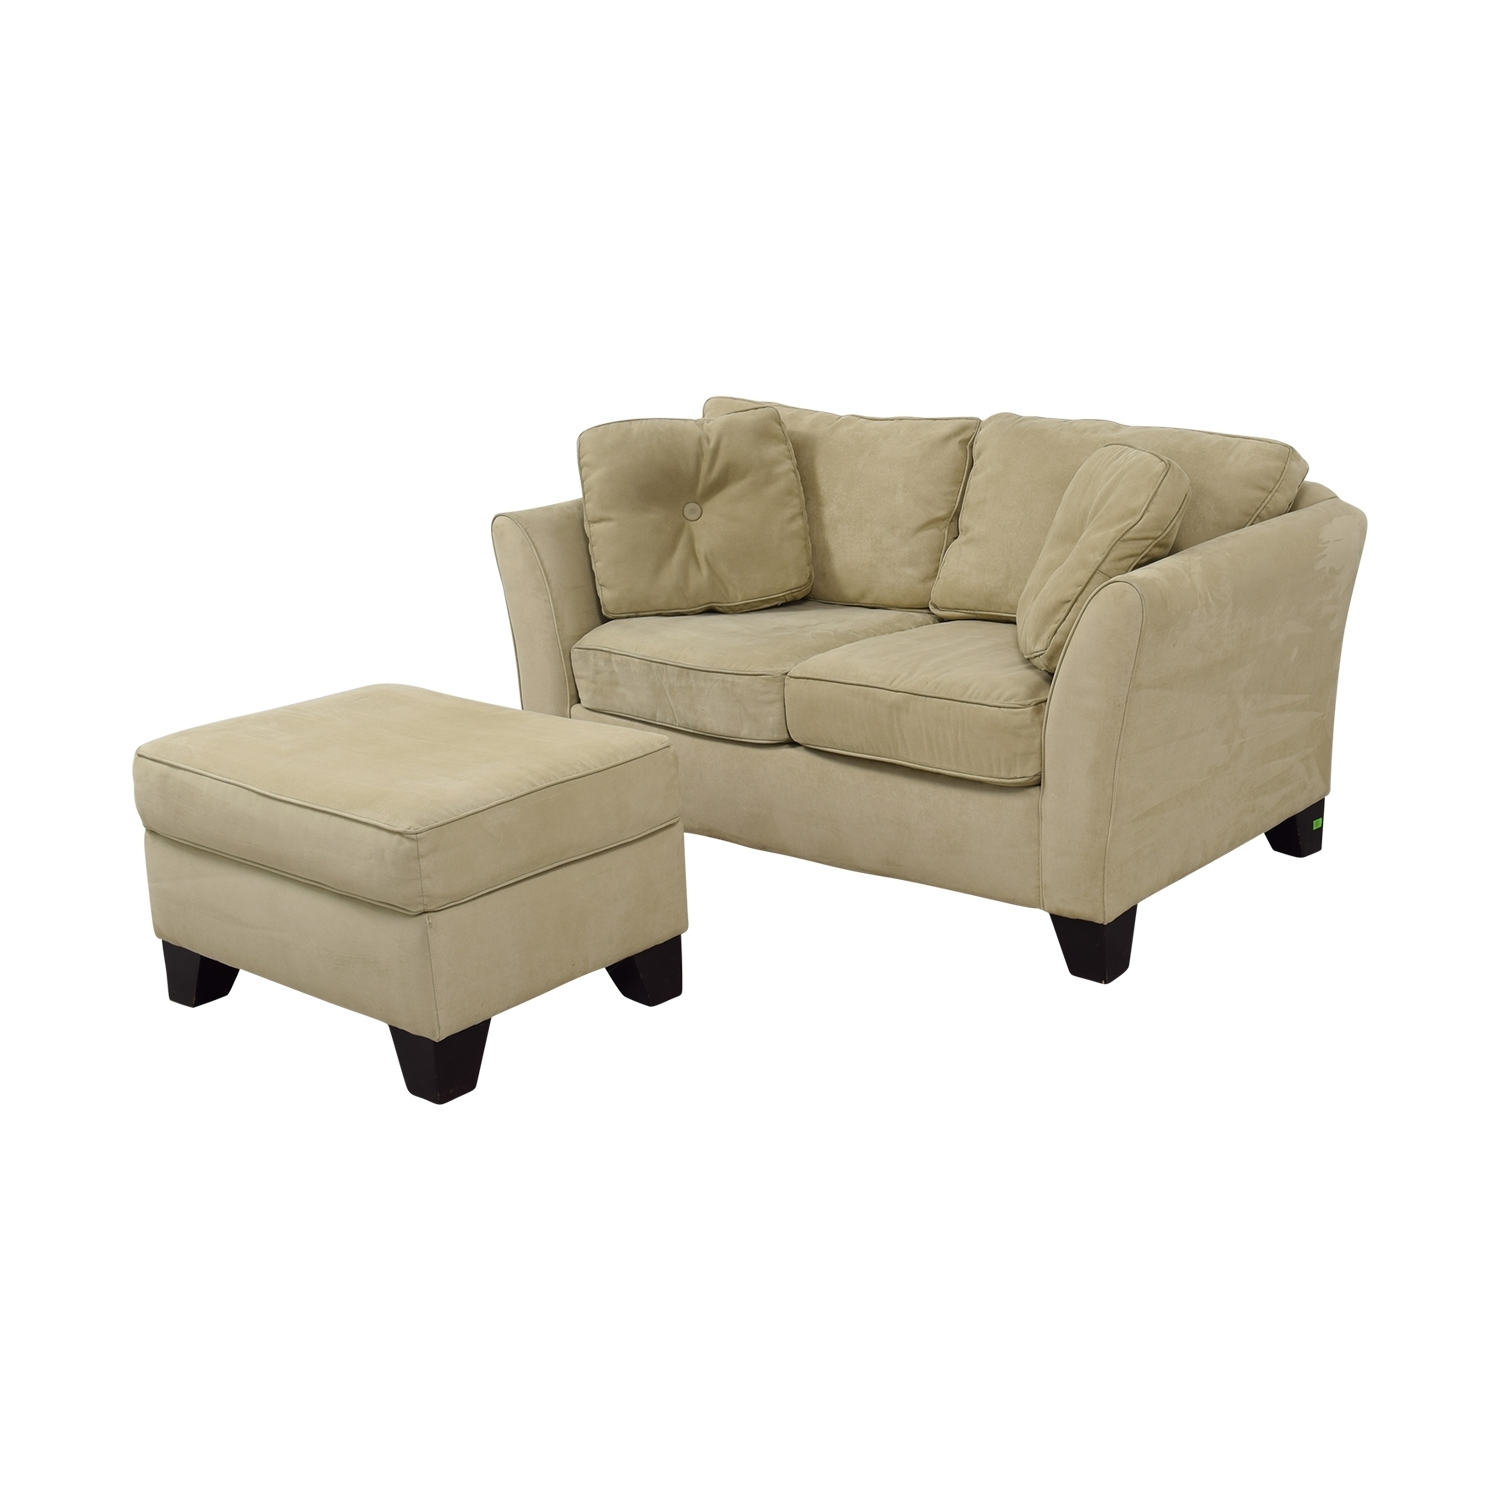 [%86% Off – Macy's Macy's Tan Loveseat With Ottoman / Sofas Intended For Most Current Loveseats With Ottoman|Loveseats With Ottoman Inside Popular 86% Off – Macy's Macy's Tan Loveseat With Ottoman / Sofas|Most Recently Released Loveseats With Ottoman Within 86% Off – Macy's Macy's Tan Loveseat With Ottoman / Sofas|Well Liked 86% Off – Macy's Macy's Tan Loveseat With Ottoman / Sofas For Loveseats With Ottoman%] (View 14 of 20)